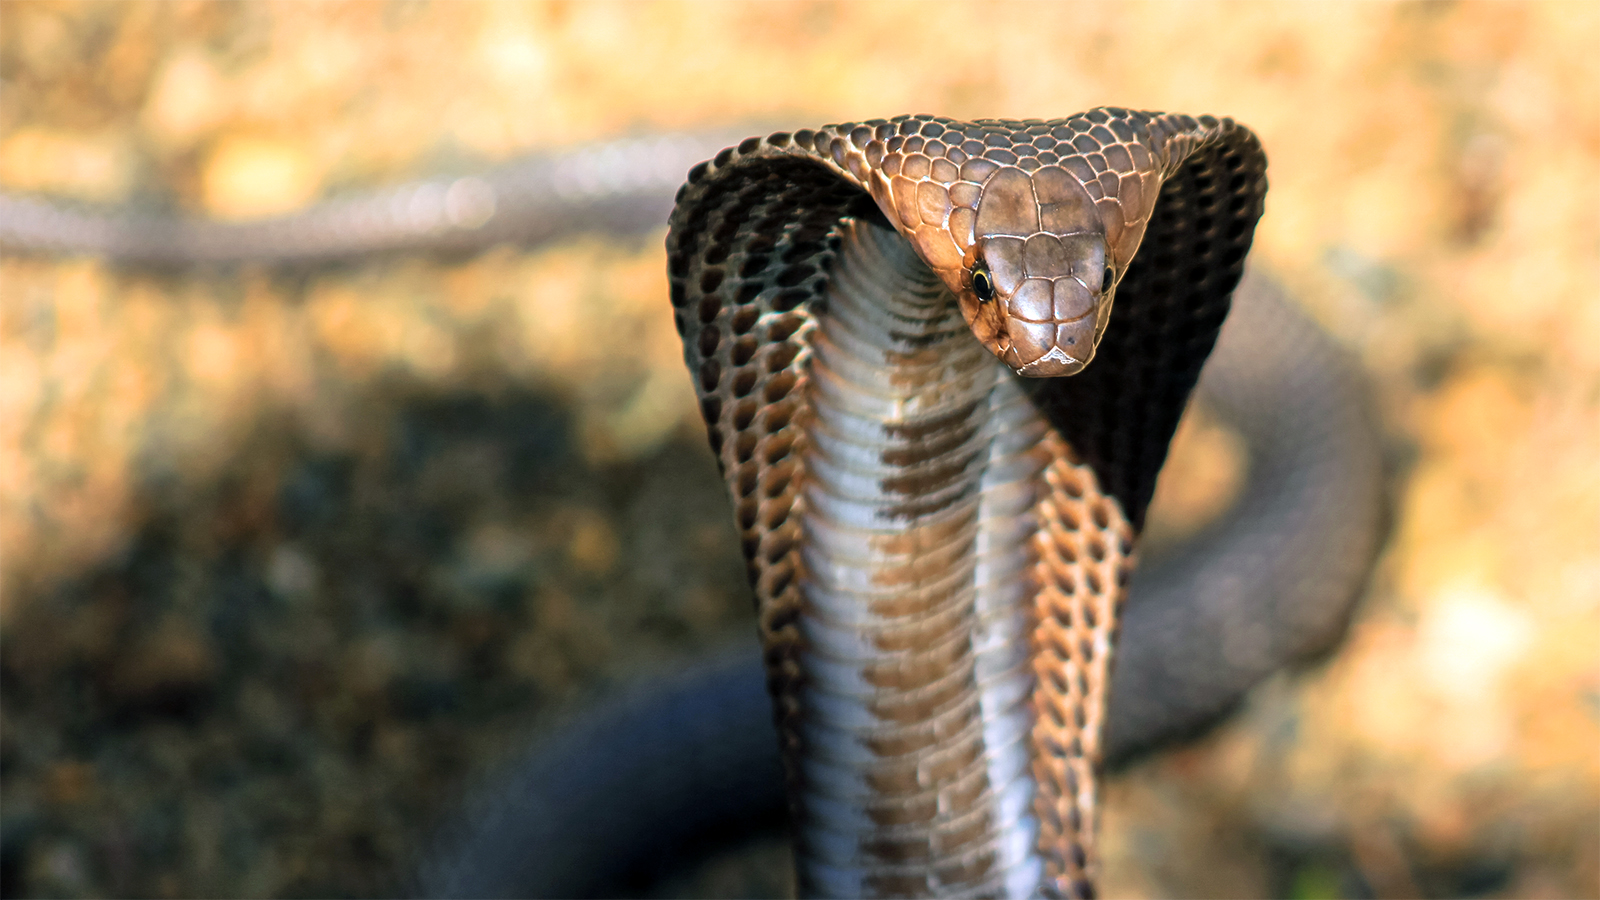 King Cobra Pics, Animal Collection